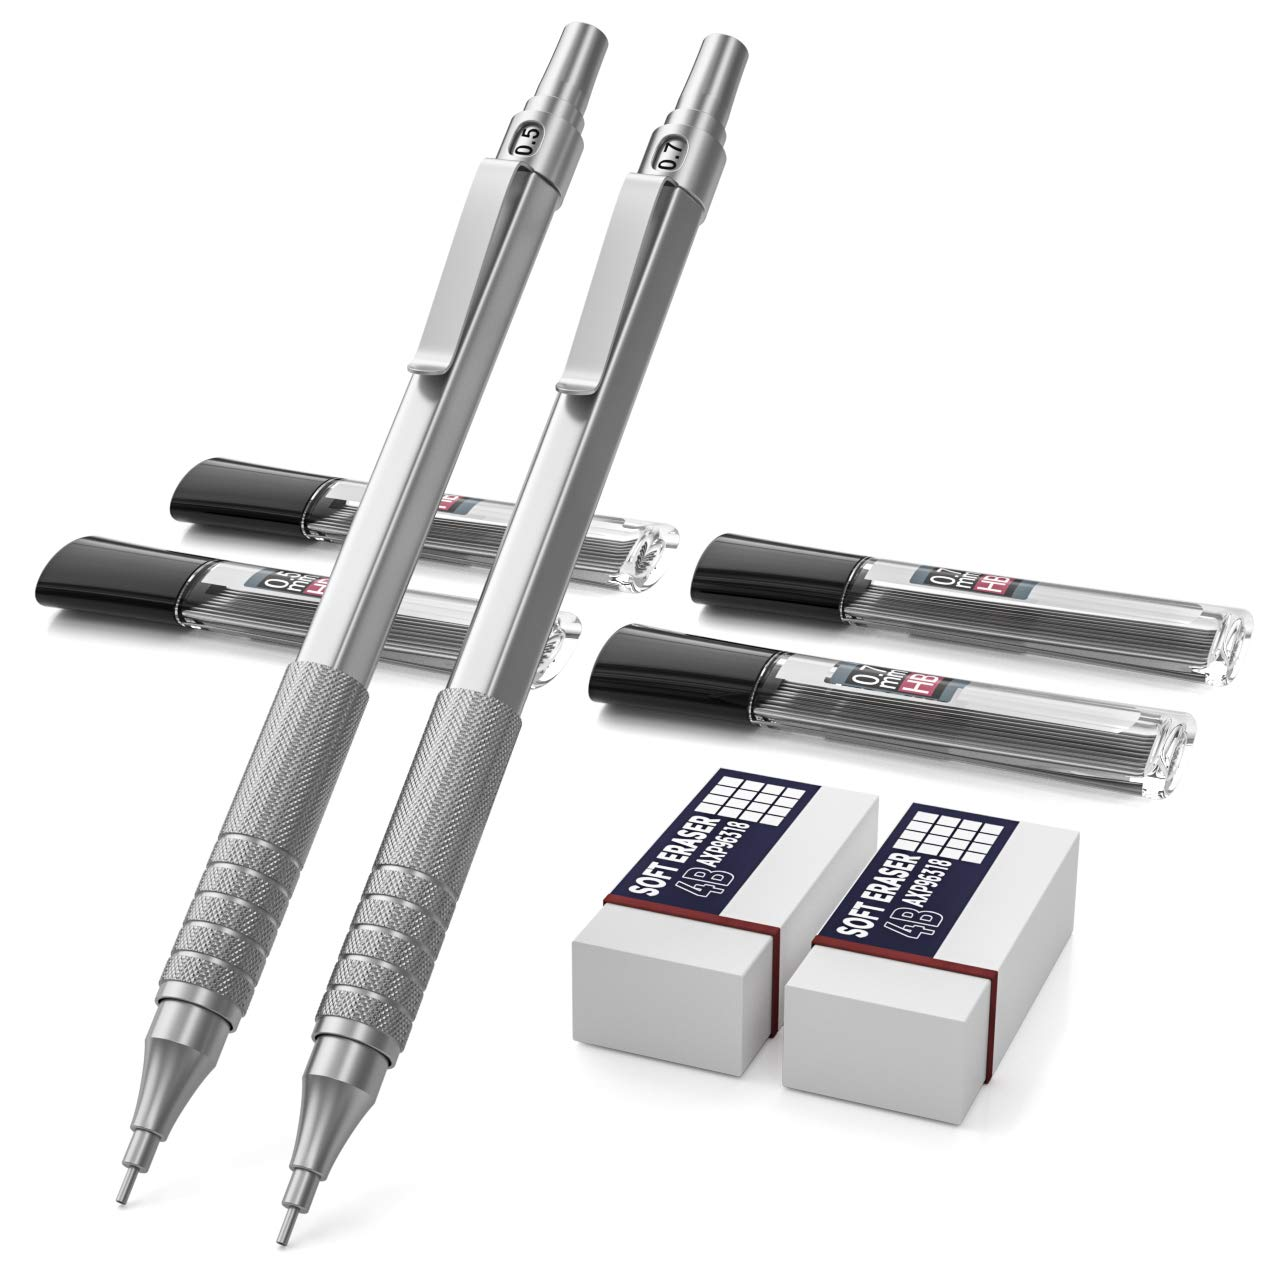 Nicpro Mechanical Pencils Set